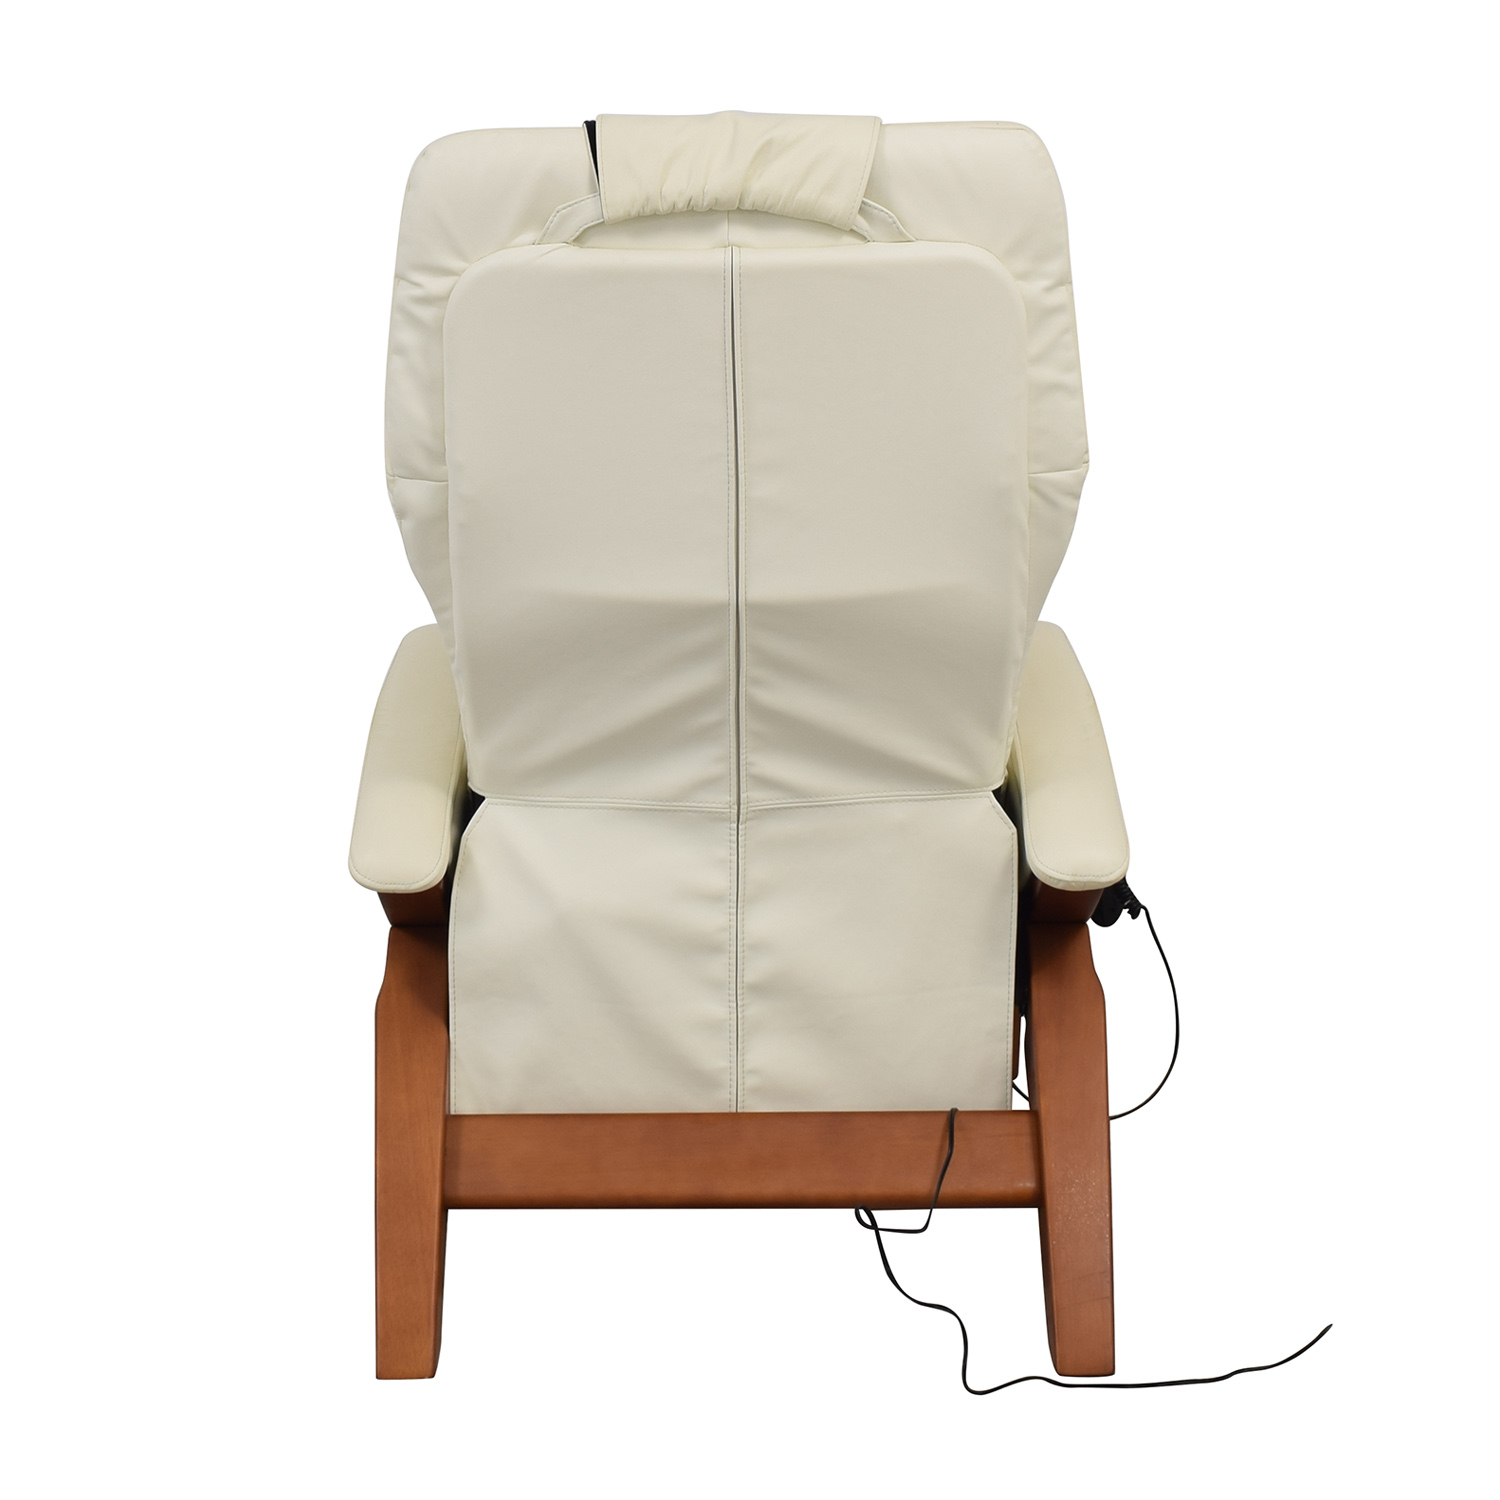 buy Relax The Back Relax The Back Electro Lounge Chair online